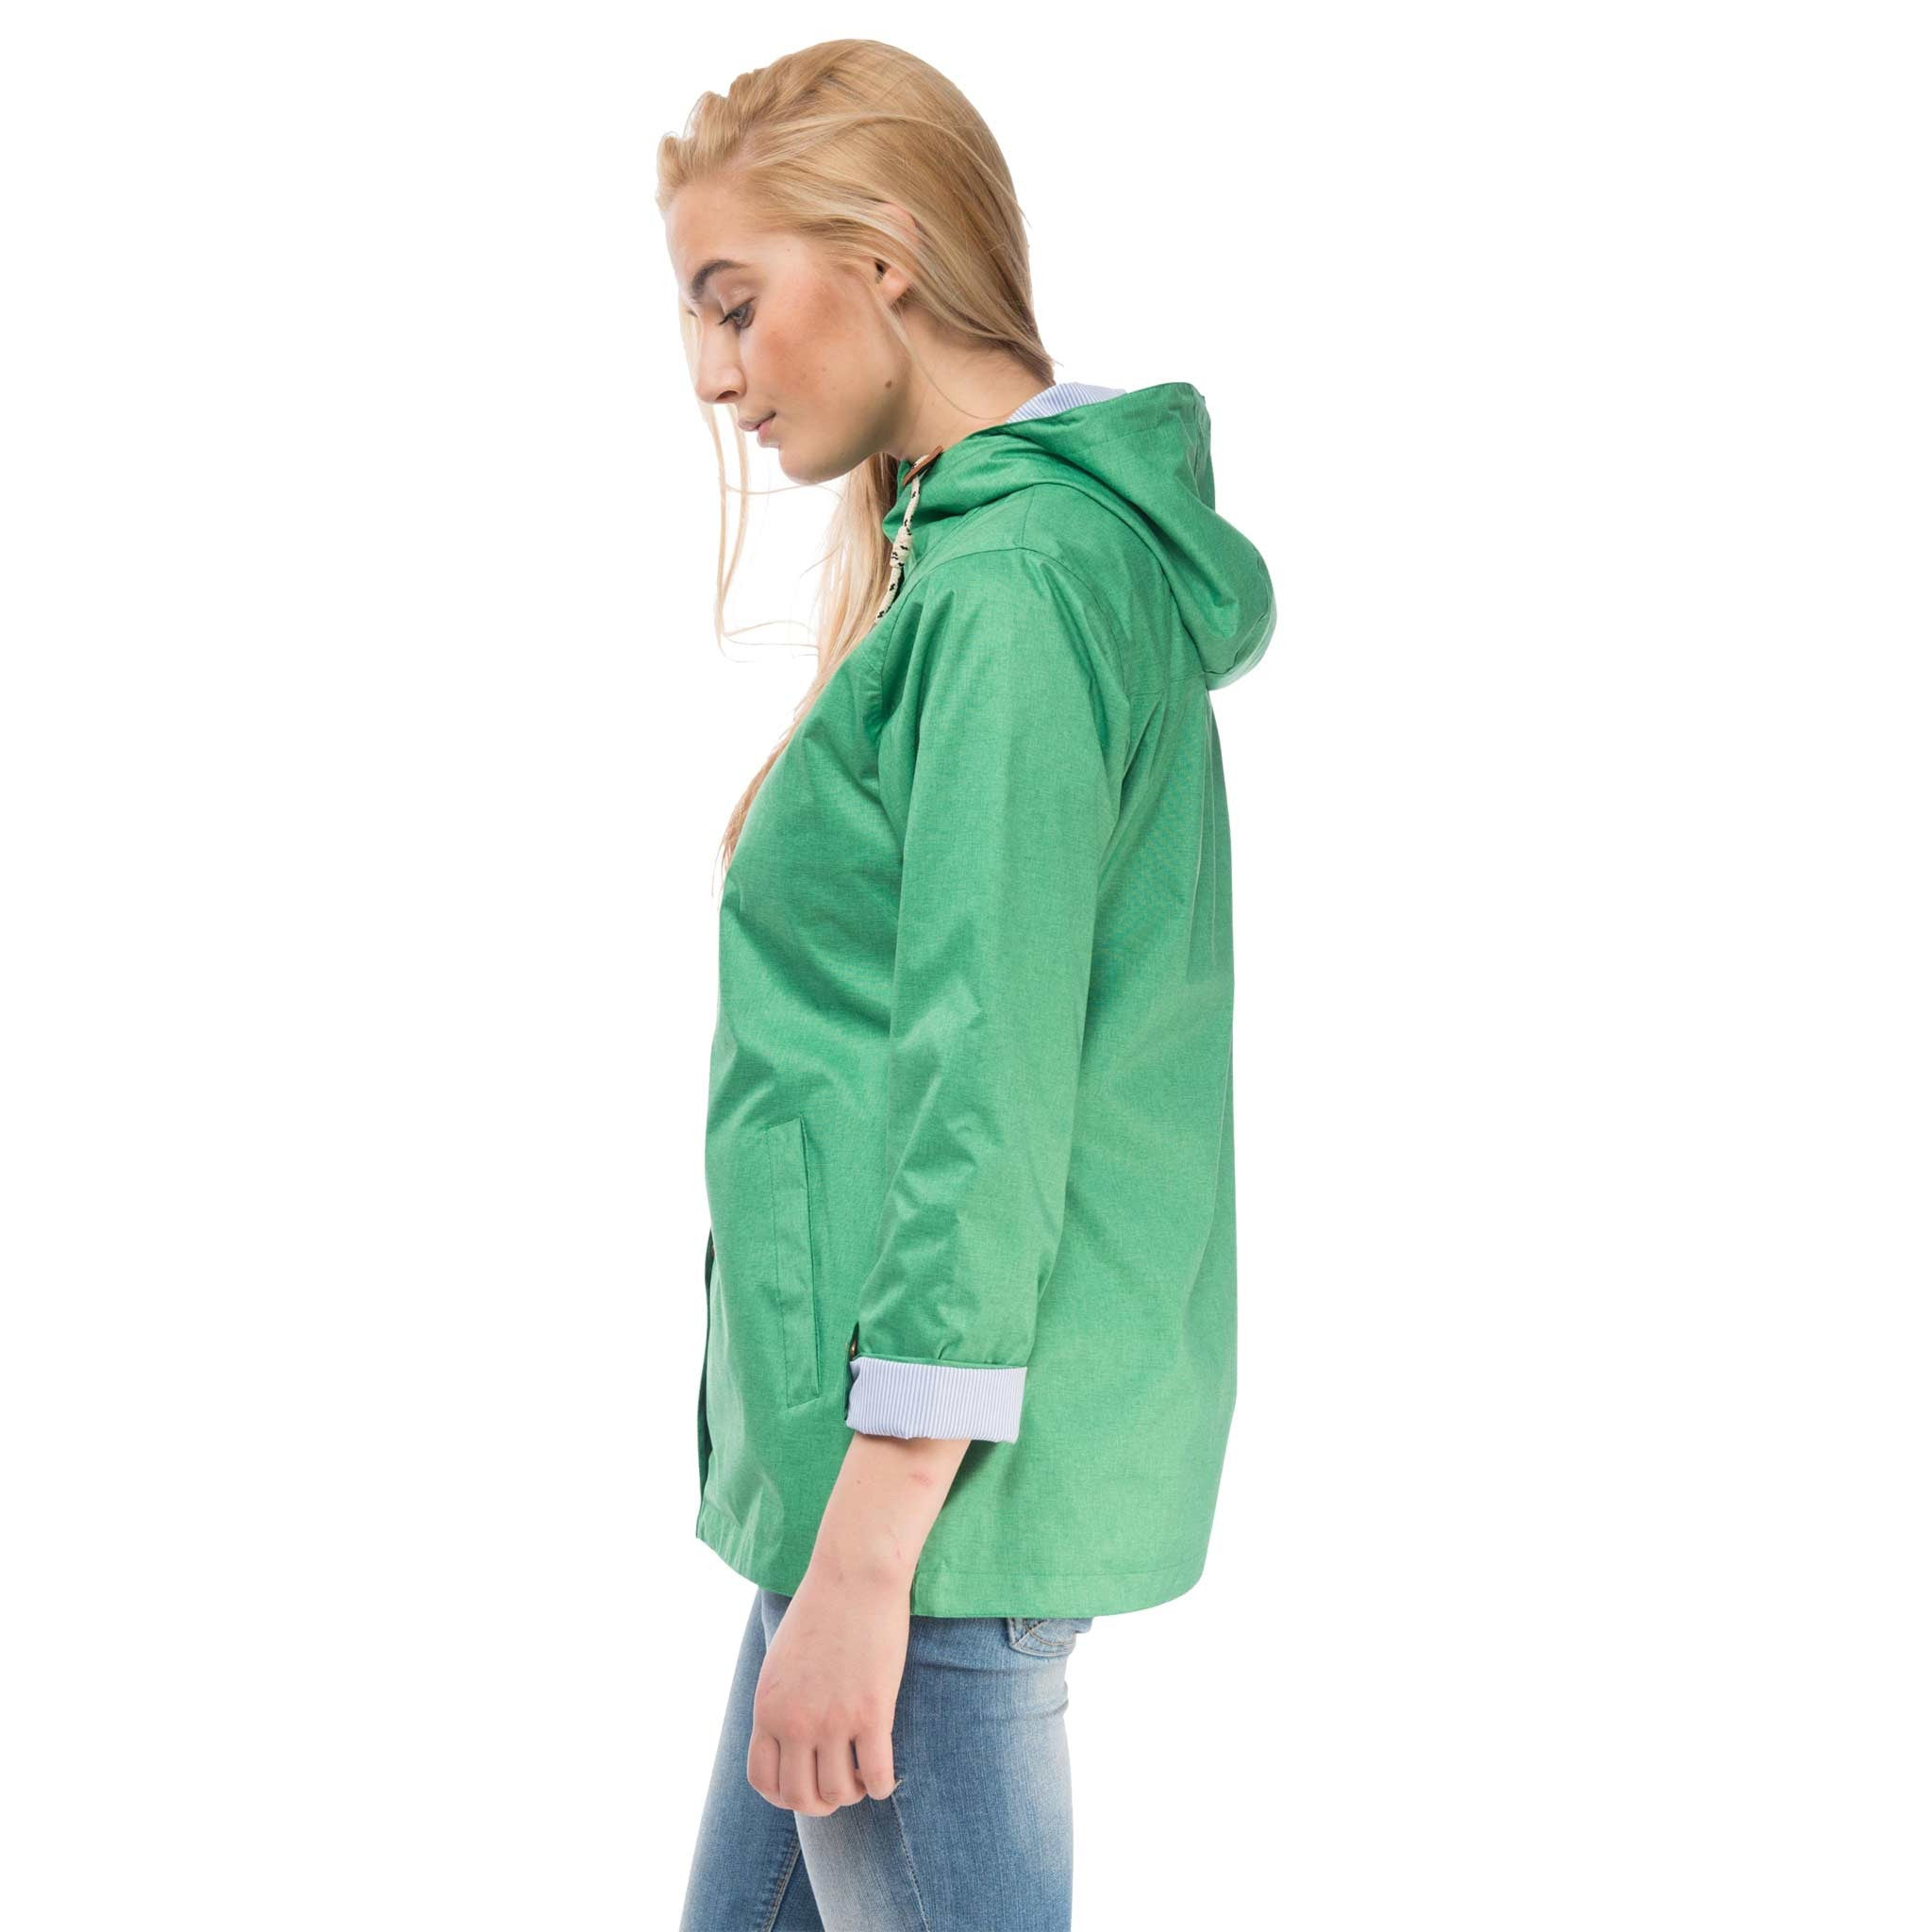 Bluejay Womens Waterproof Jacket in Seagrass Green, Modelled Side View | Lighthouse